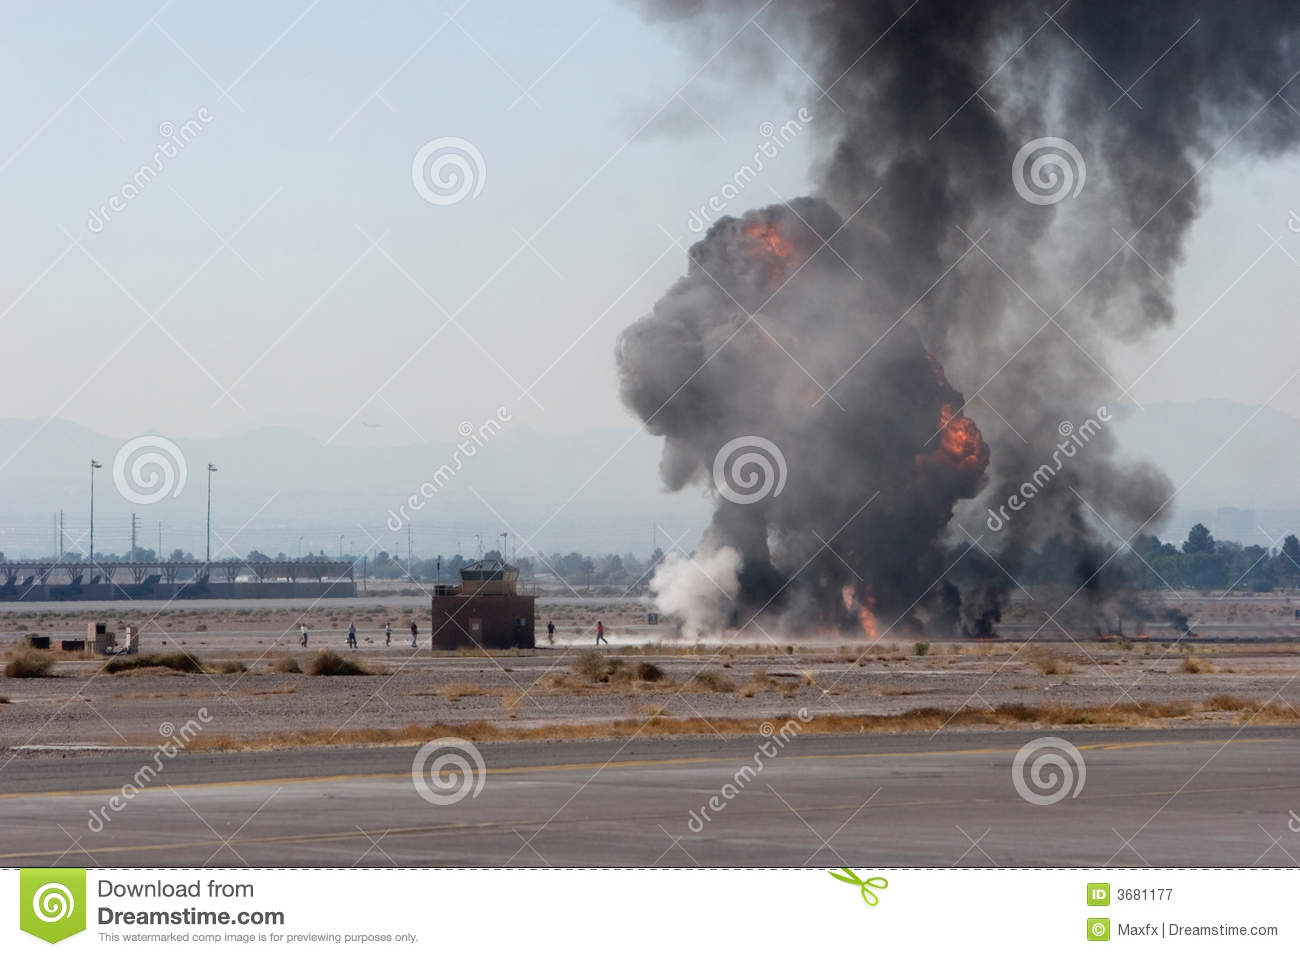 Airforce bombing at airshow in Nevada